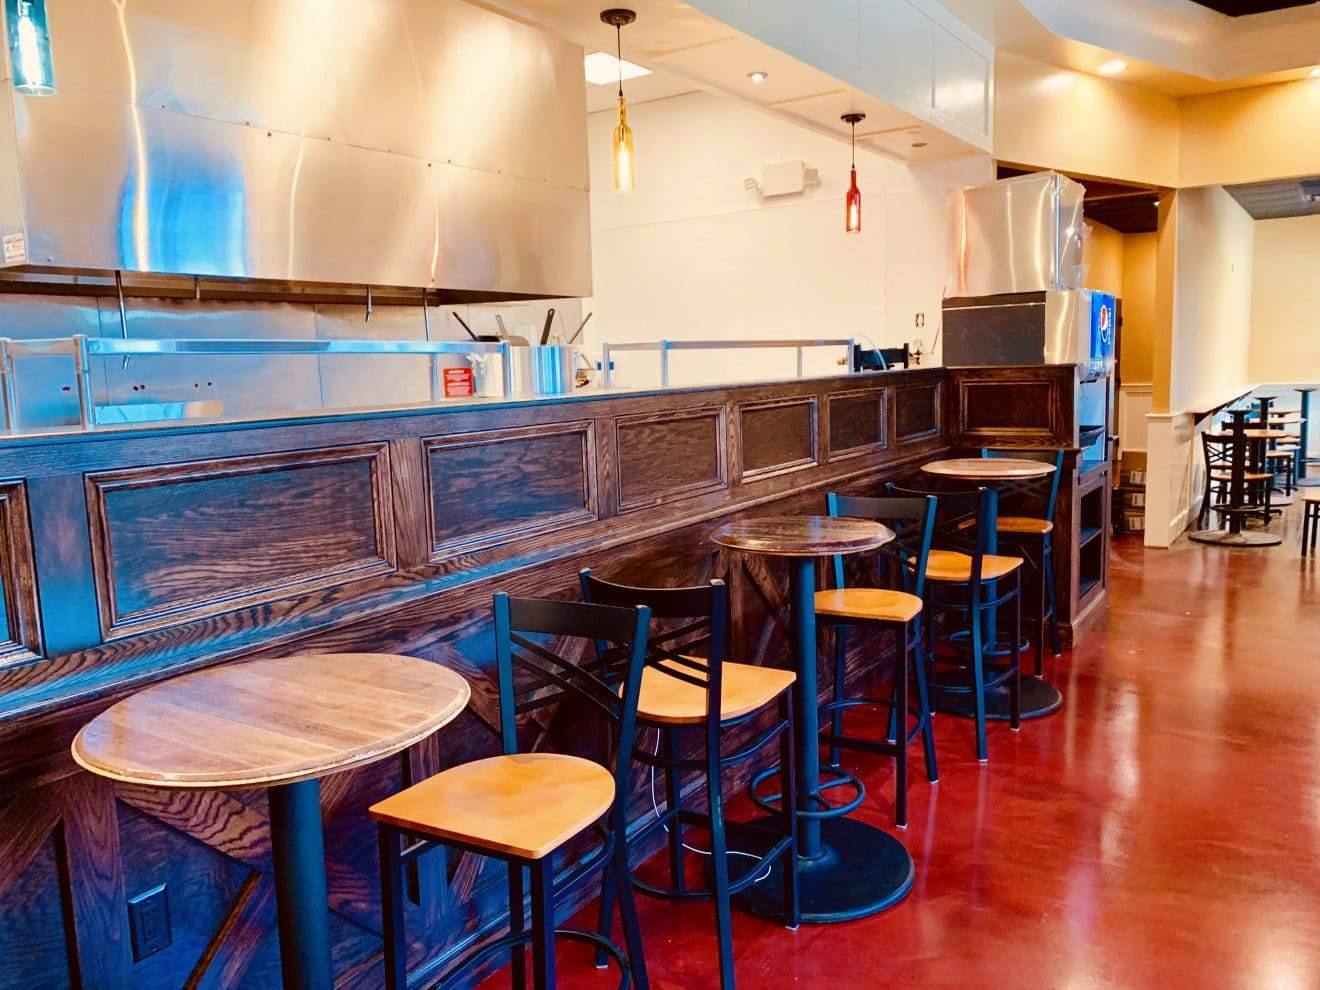 Locavino Grand Opening Set for This Weekend - Locavino will hold a grand opening of its wine café and retail operation at 8519 Fenton St. Saturday and Sunday, Aug. 17-18, according to co-owner Jarrod Jabre. The Source will post details tomorrow morning about planned tastings, menu offerings and other information.